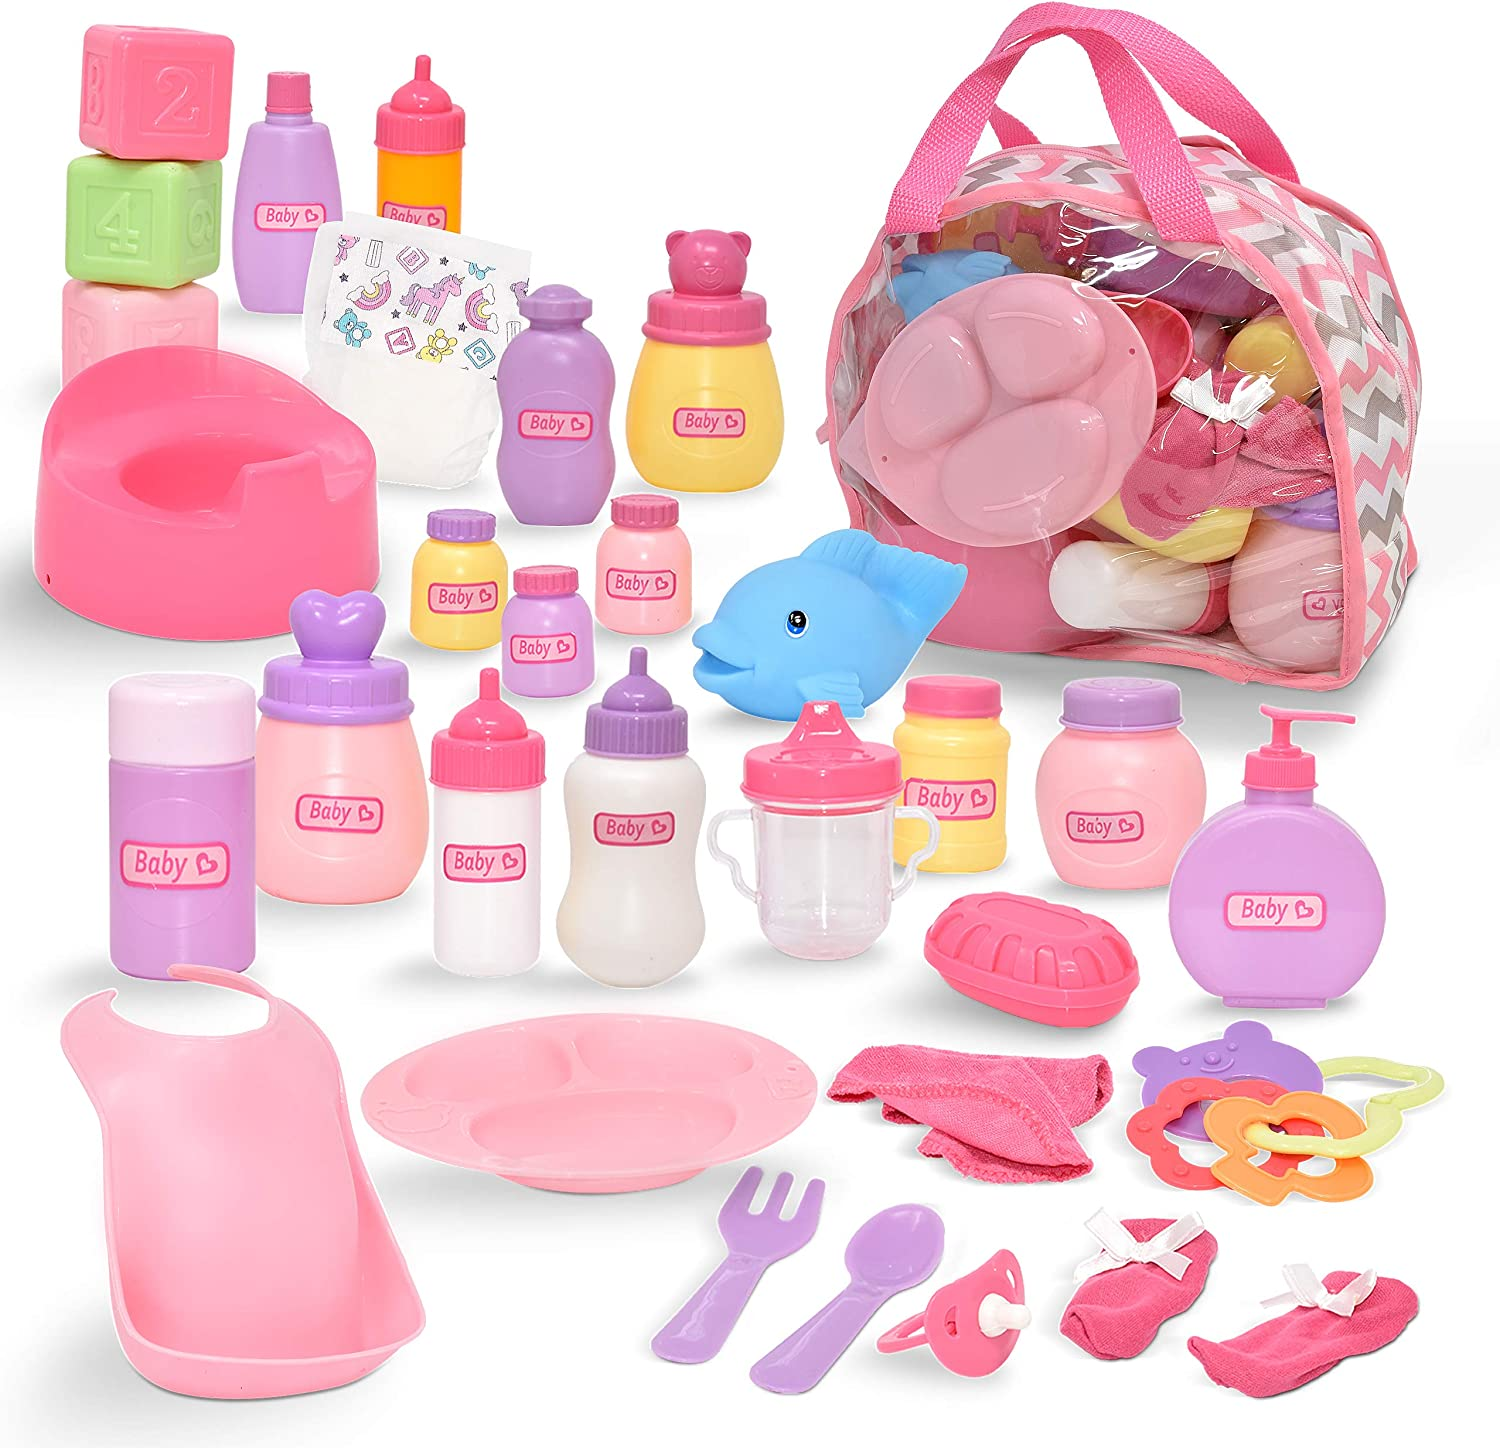 Gift Boutique Baby Doll Diaper Bag with Accessories, Doll Care Kit Doll Feeding Set with Changing Accessories Includes Doll Bottles